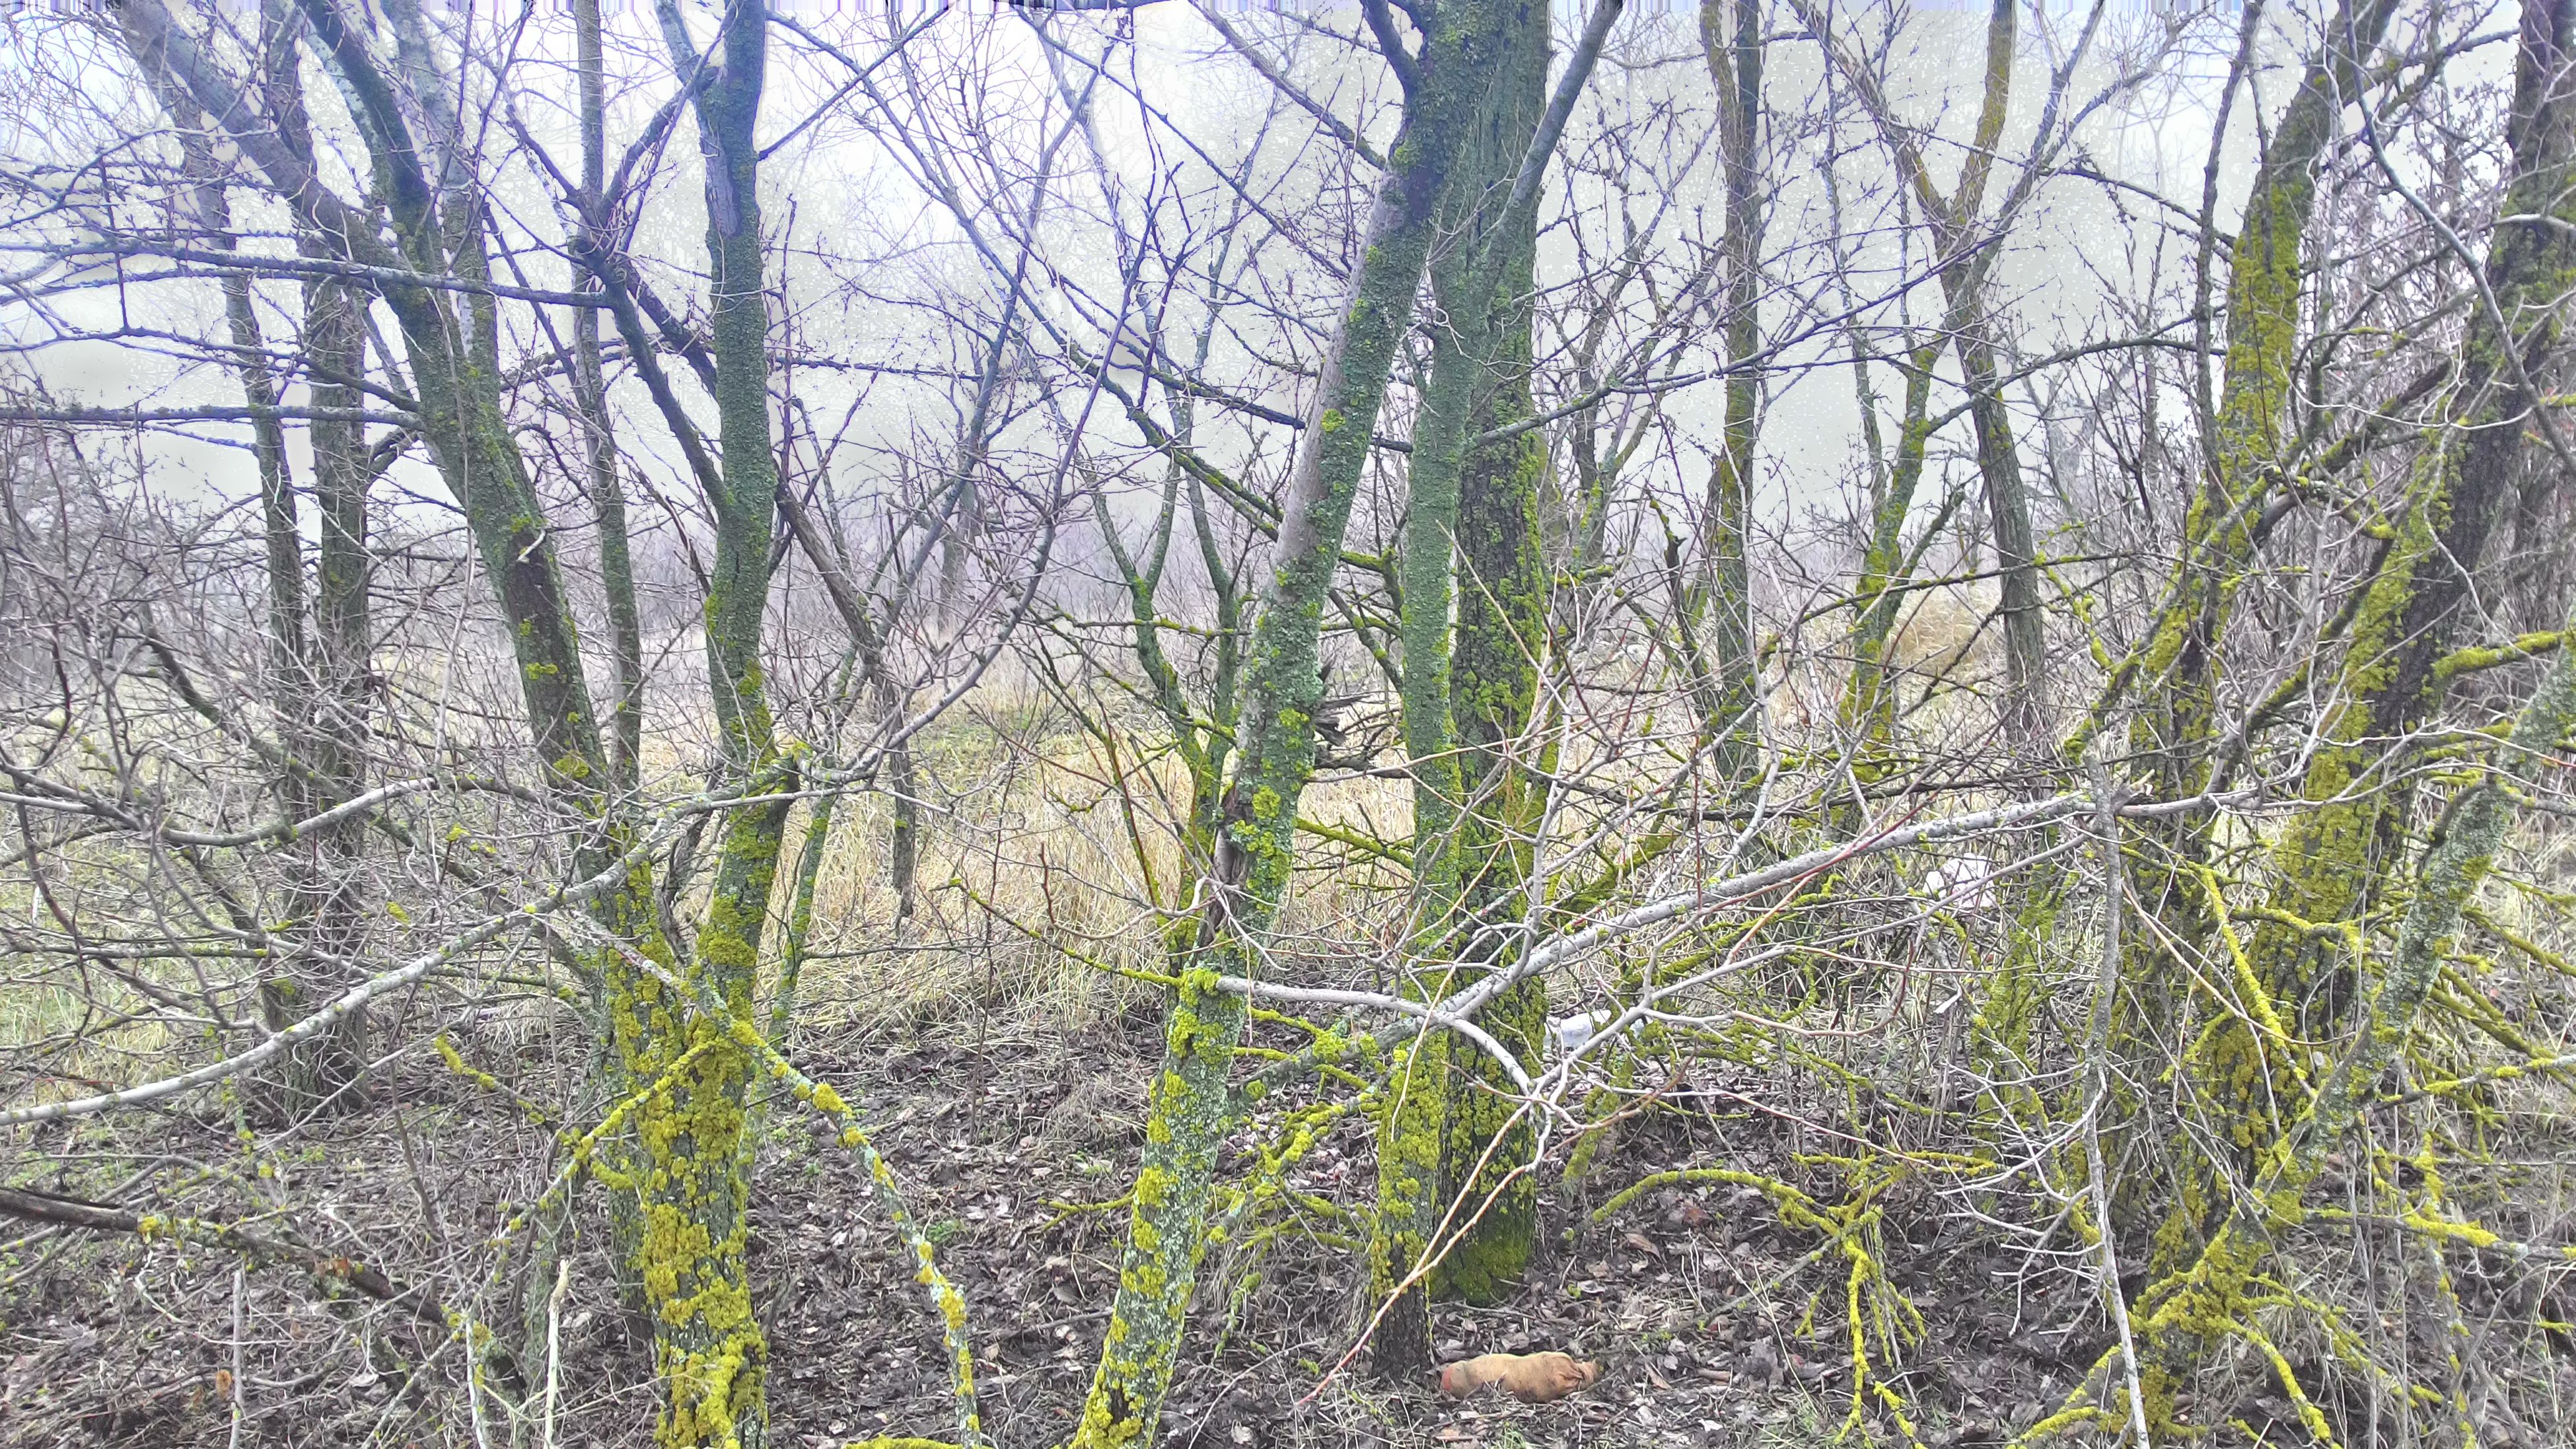 tree, bare tree, branch, tranquility, growth, nature, forest, tree trunk, tranquil scene, beauty in nature, plant, scenics, non-urban scene, day, woodland, outdoors, no people, grass, landscape, non urban scene